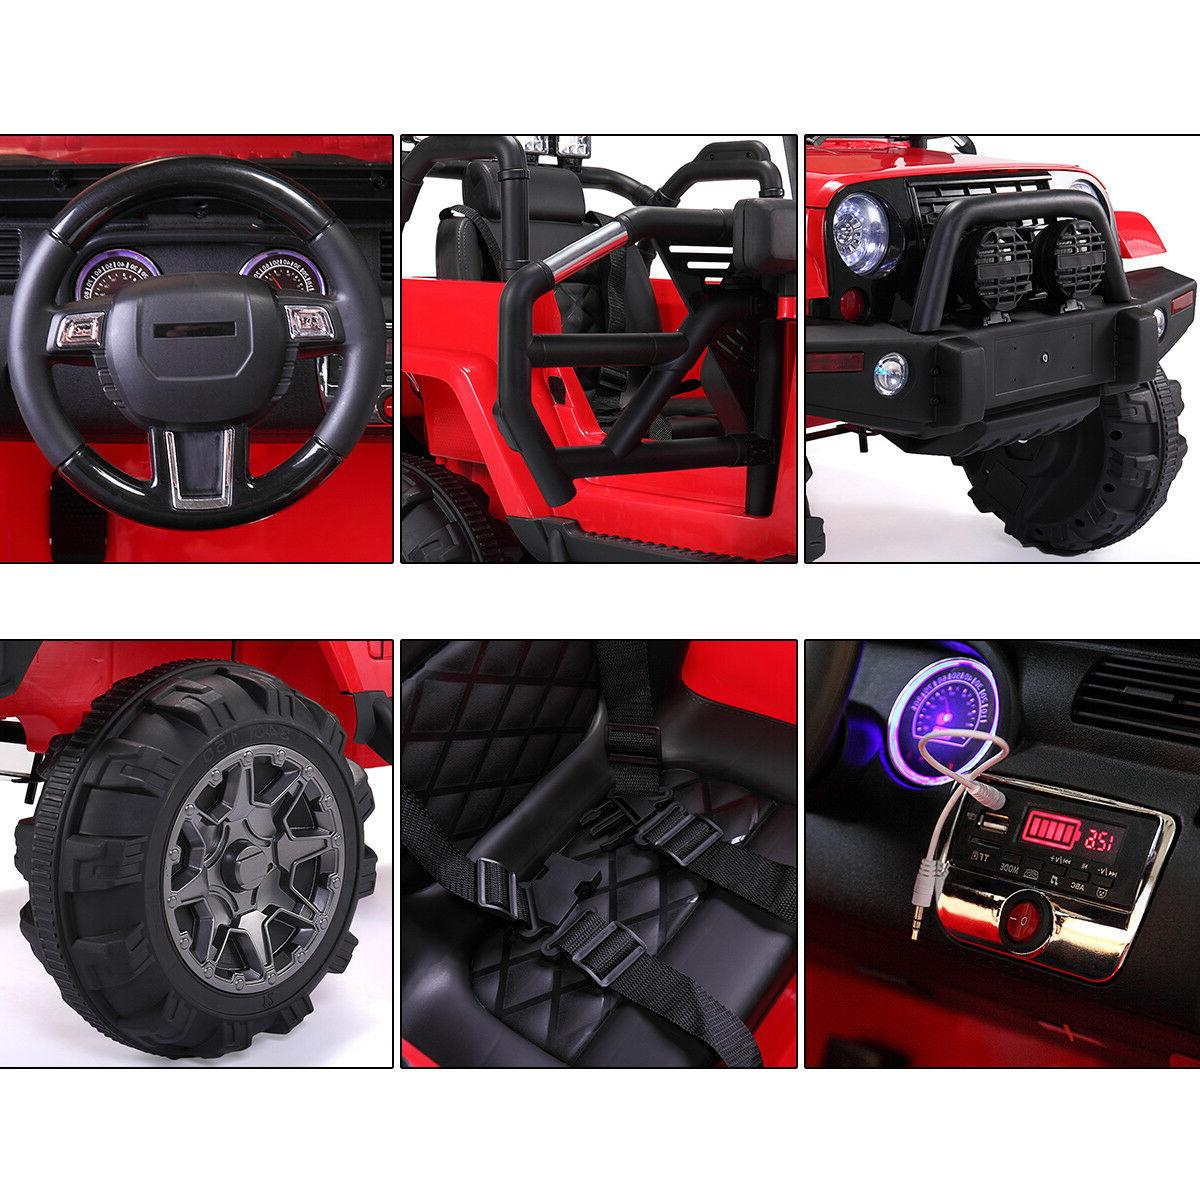 Red 12V Ride on Battery, Light, MP3, Remote